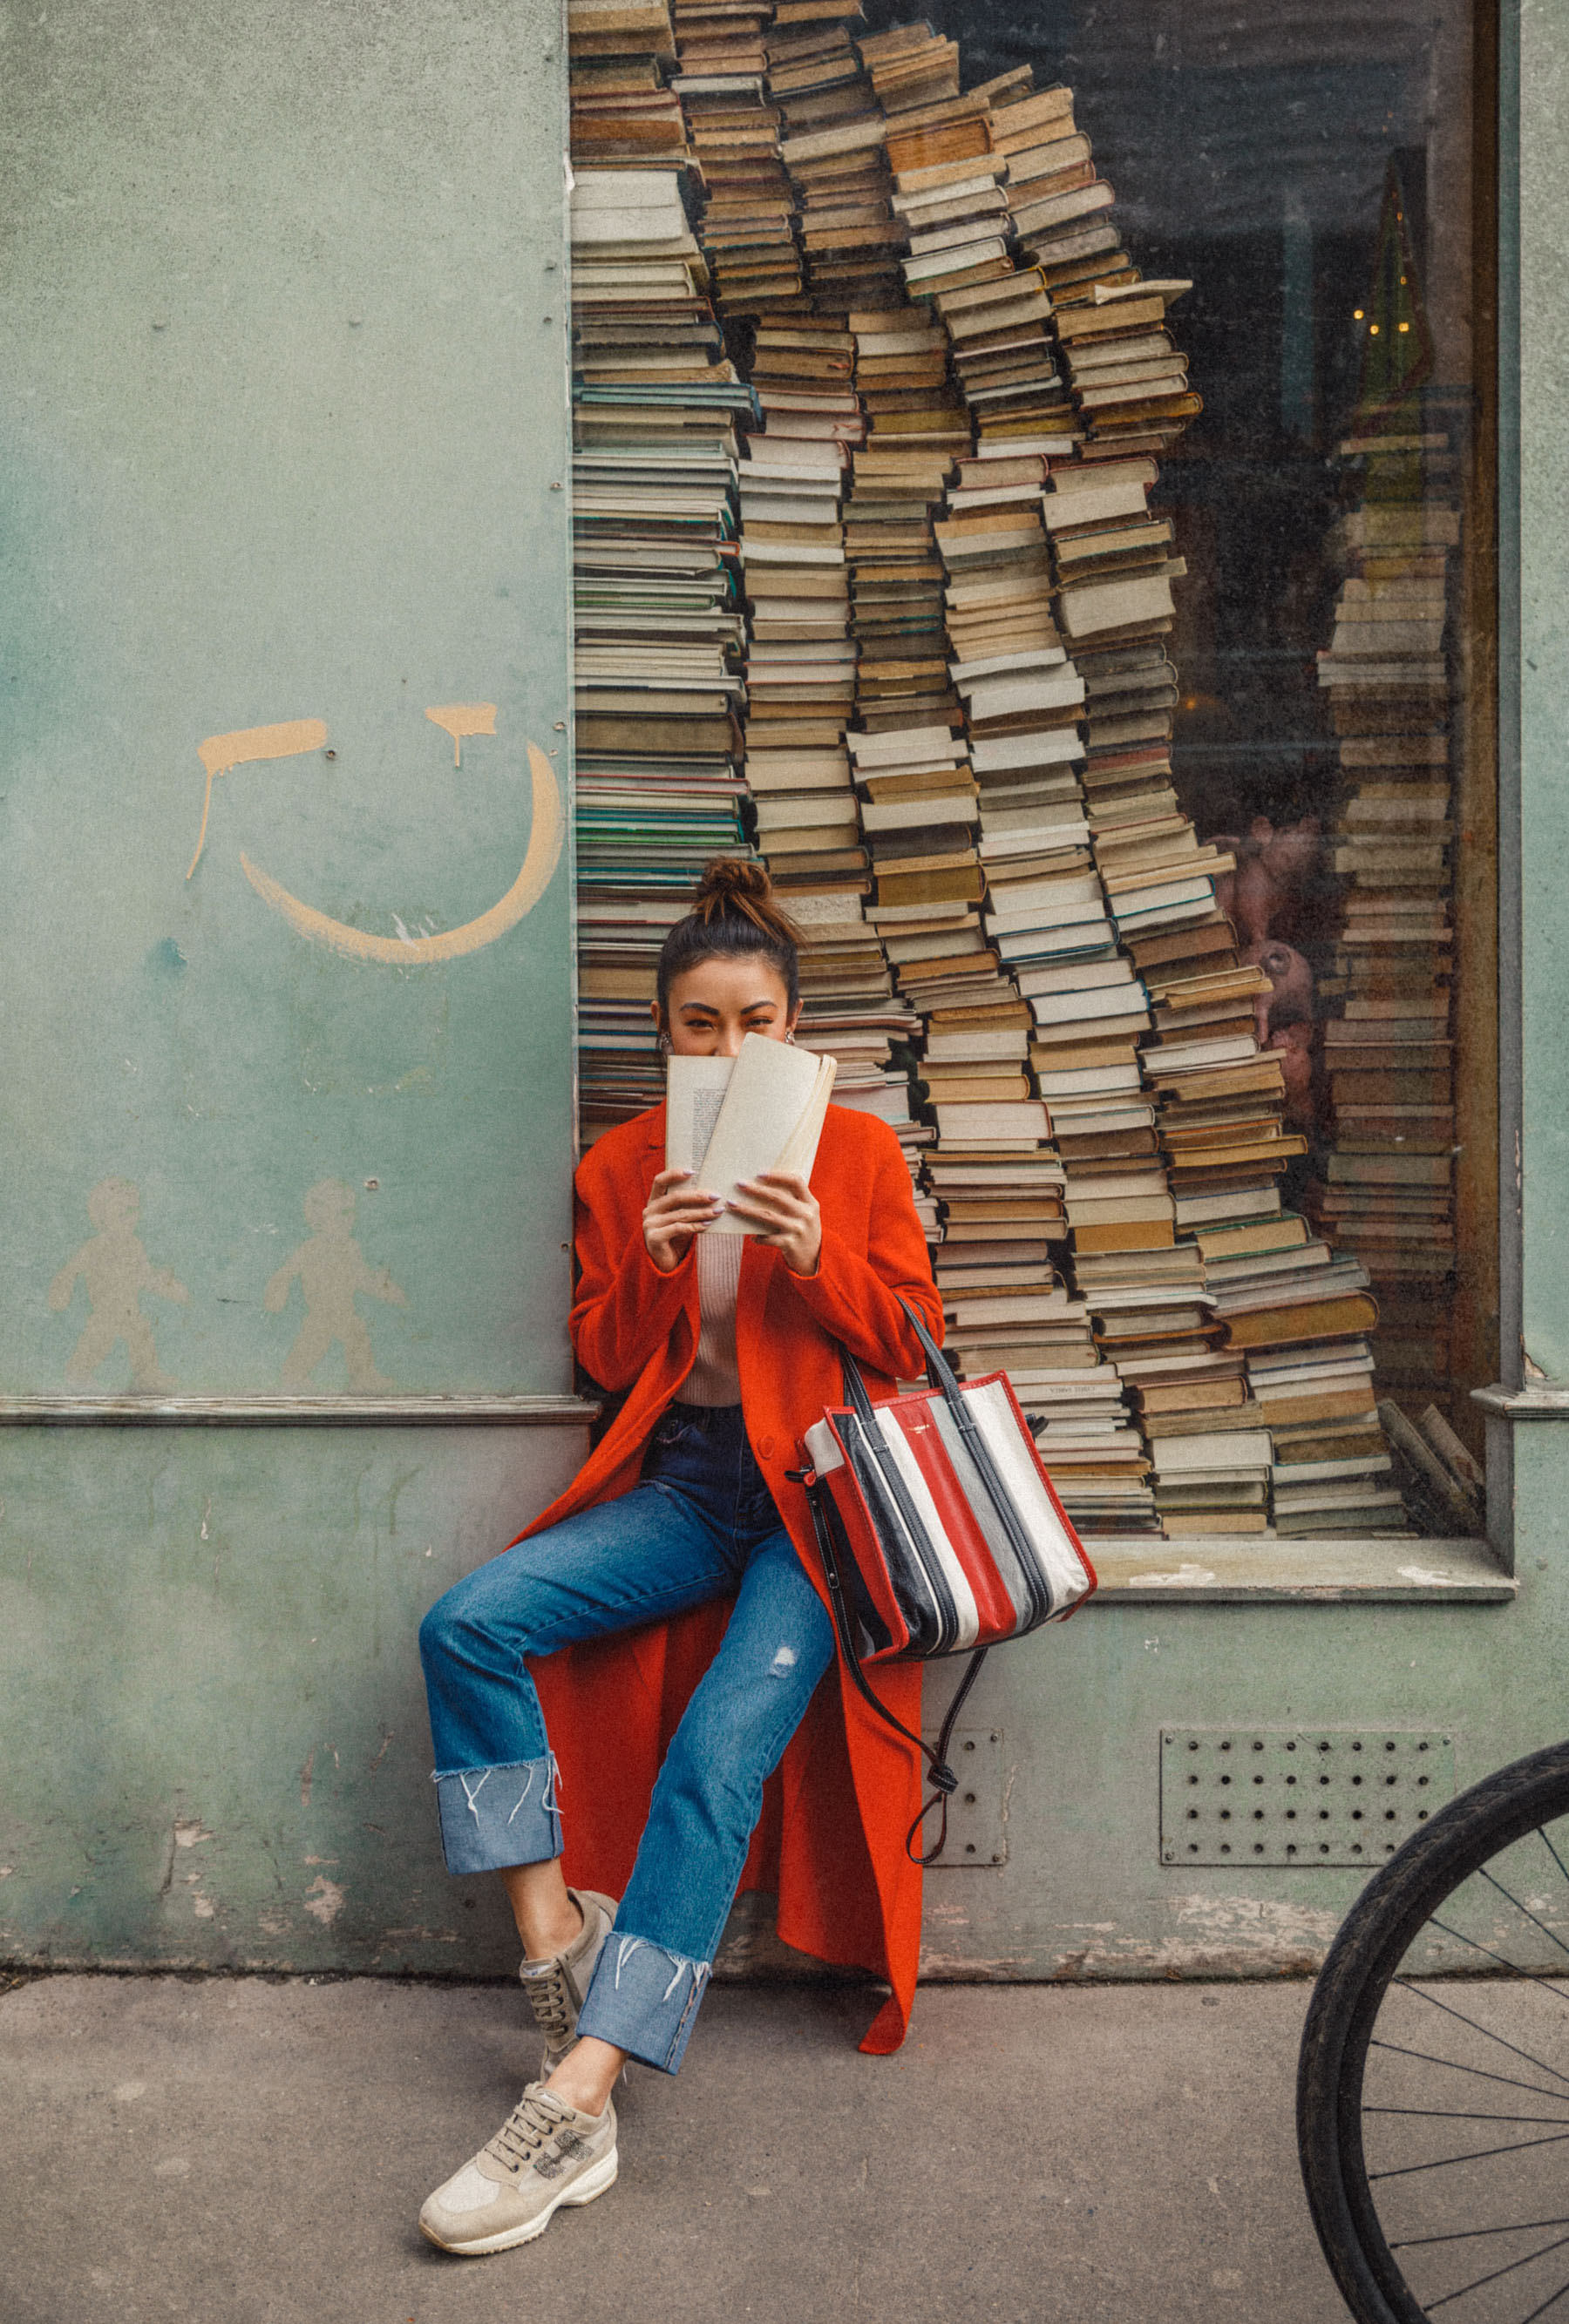 Winter Trends You Can Still Wear In Spring - Bright red coat, cuffed jeans, balenciaga bazar shopper, jessica wang in paris, pfw street style // Notjessfashion.com